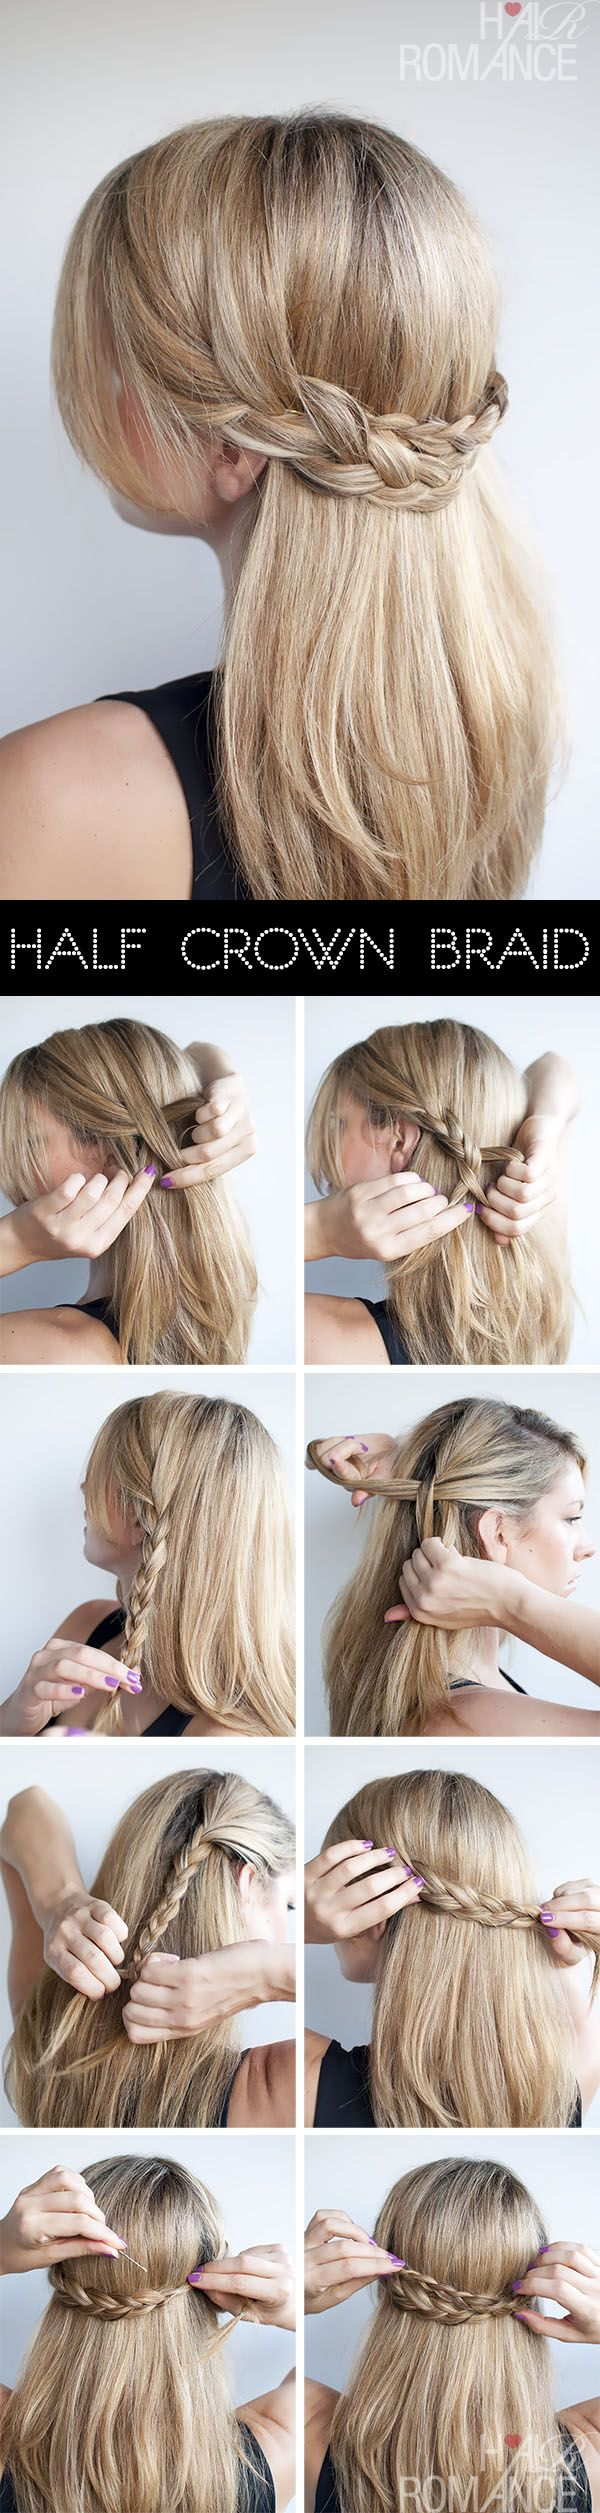 Half Crown Braid Beauty.com